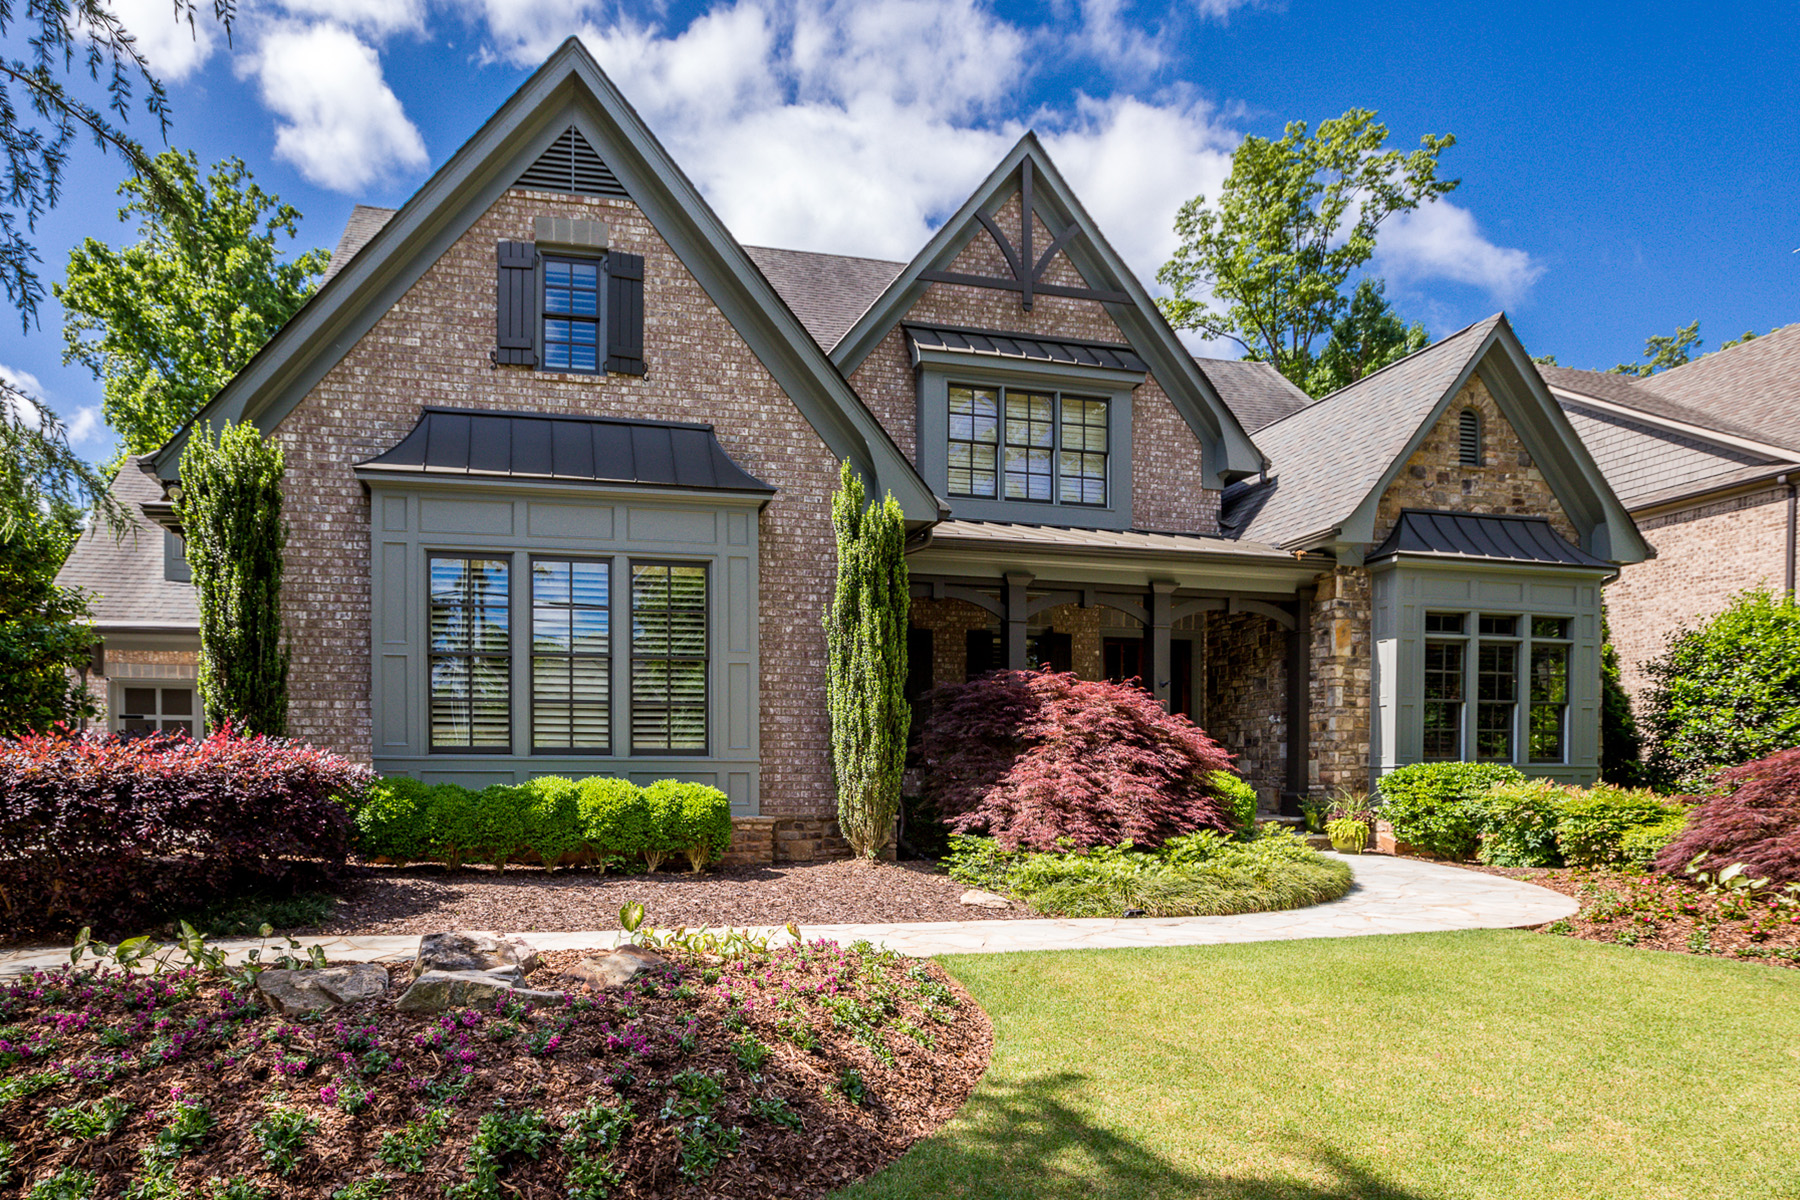 Single Family Homes のために 売買 アット This Luxury Home has Everything on Your Dream-Home Wish List 1581 Windsor Parkway NE, Brookhaven, ジョージア 30319 アメリカ